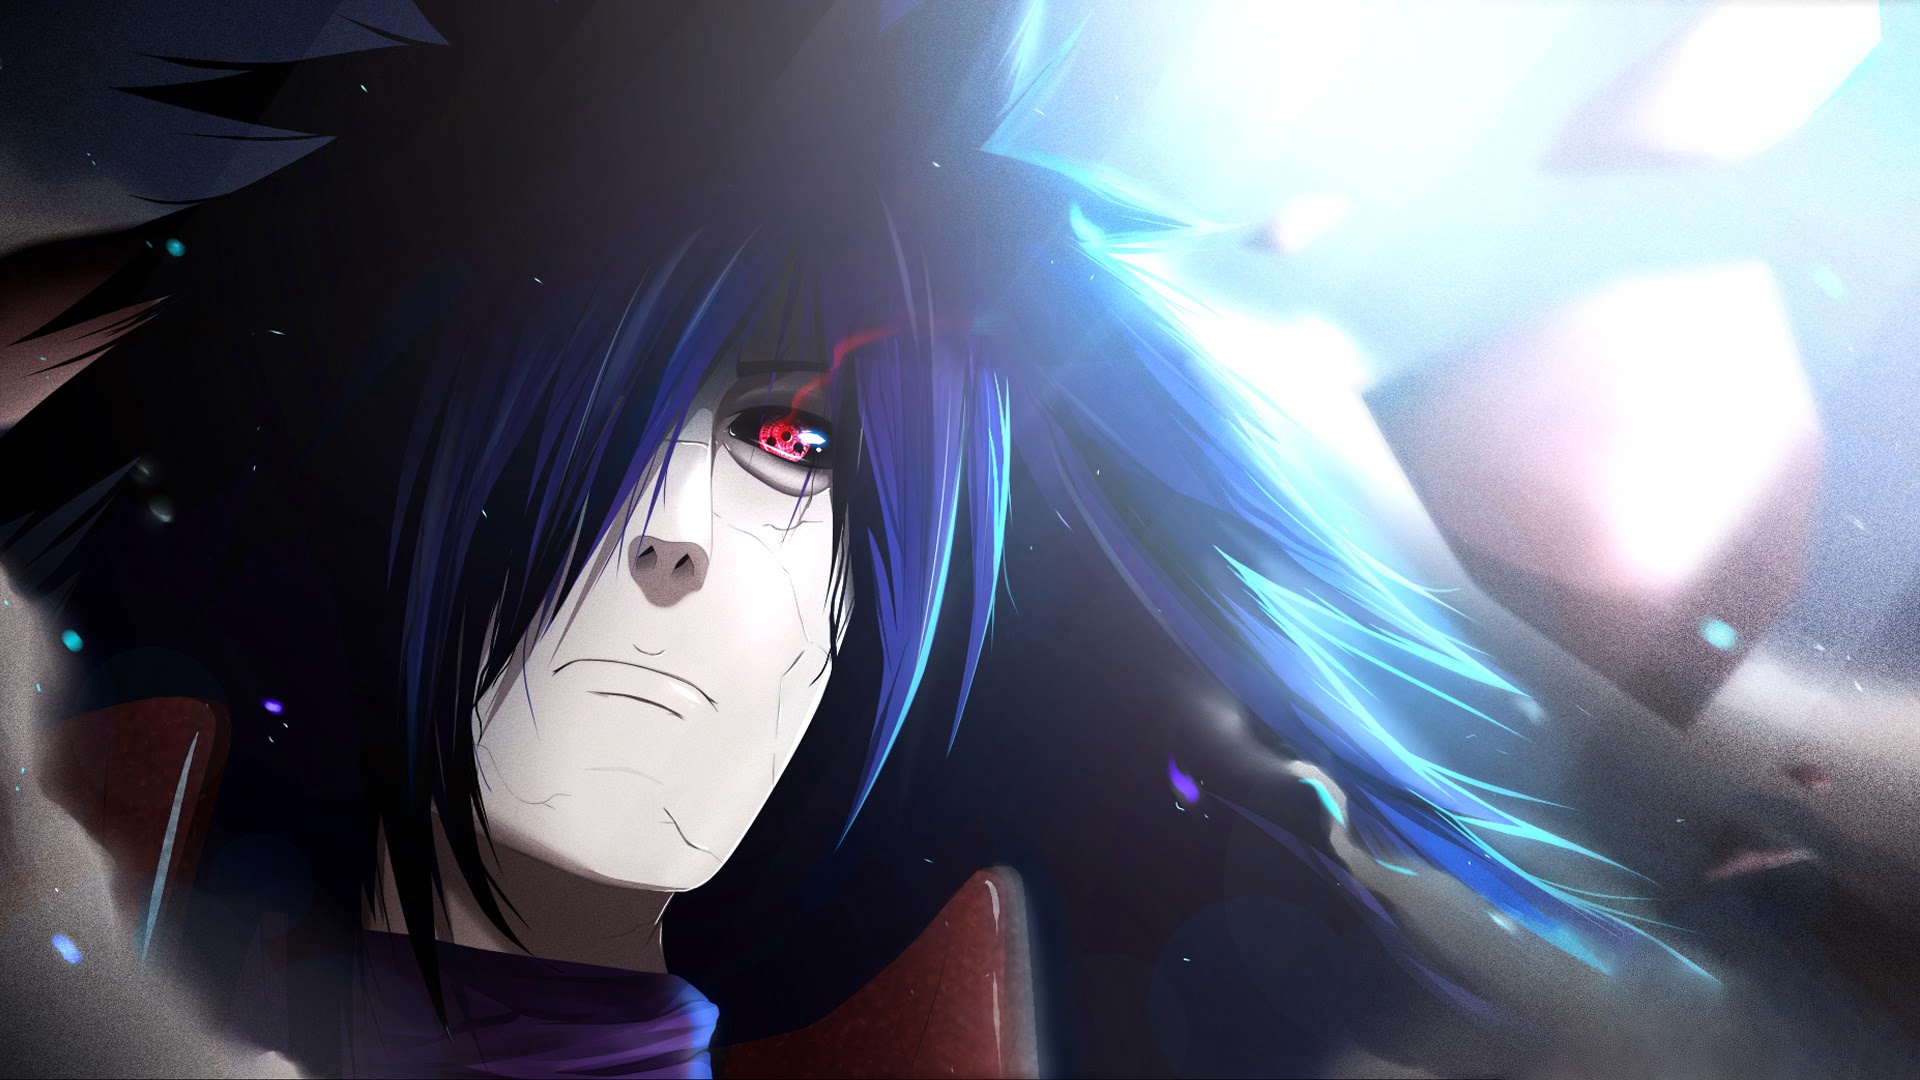 Madara uchiha hd wallpaper background image 1920x1080 - Rinnegan wallpaper hd ...